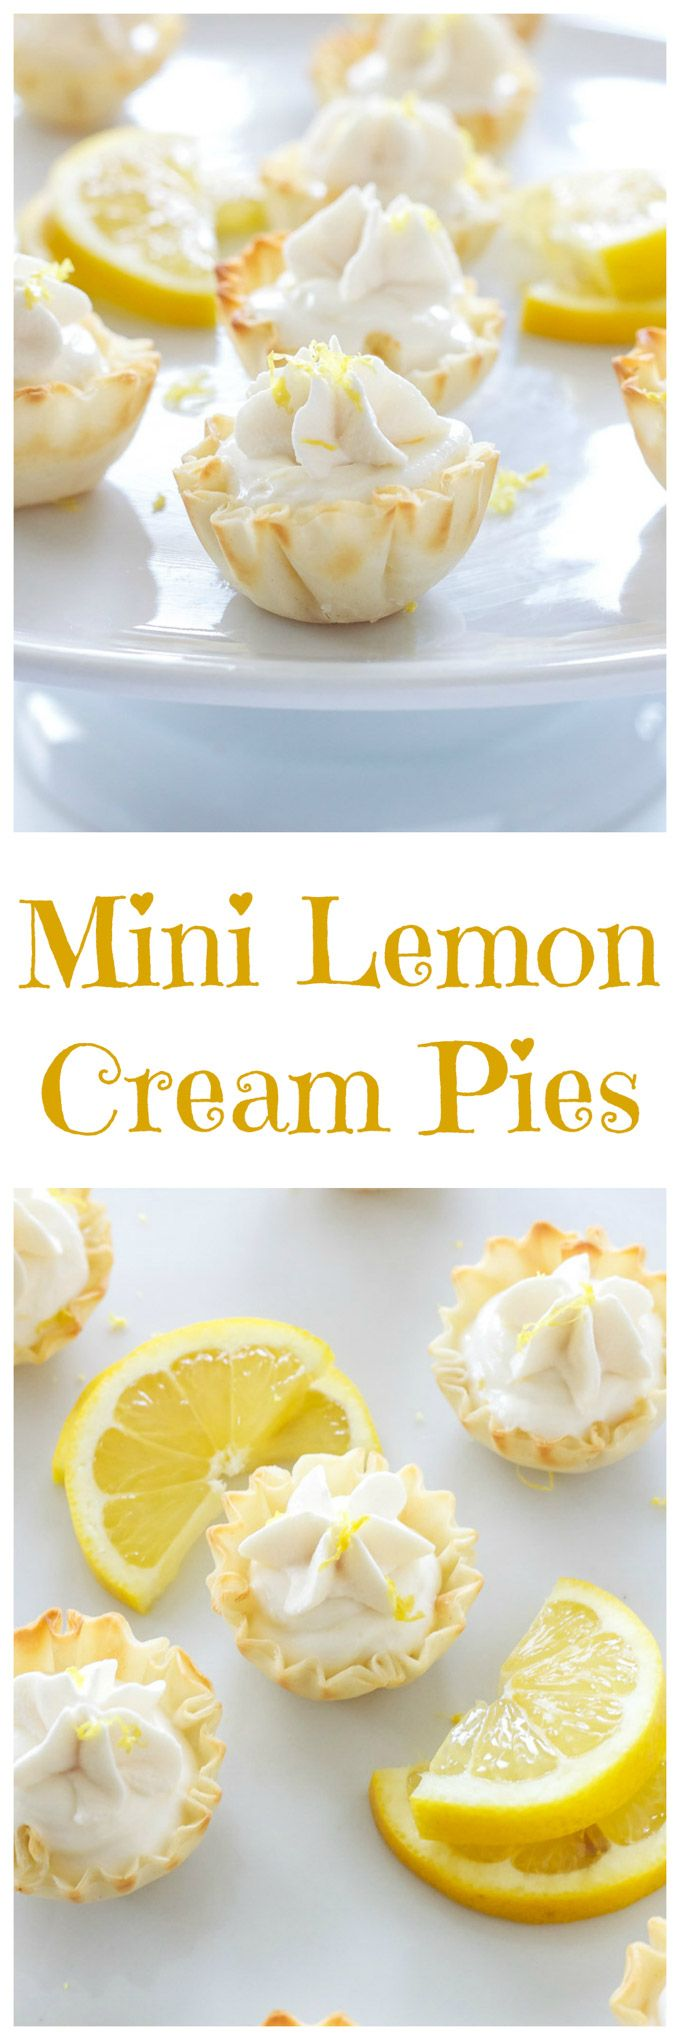 Lemon Cream Pies - Lightened up lemon cream pie filling served in mini phyllo cups is the perfect bite sized dessert!